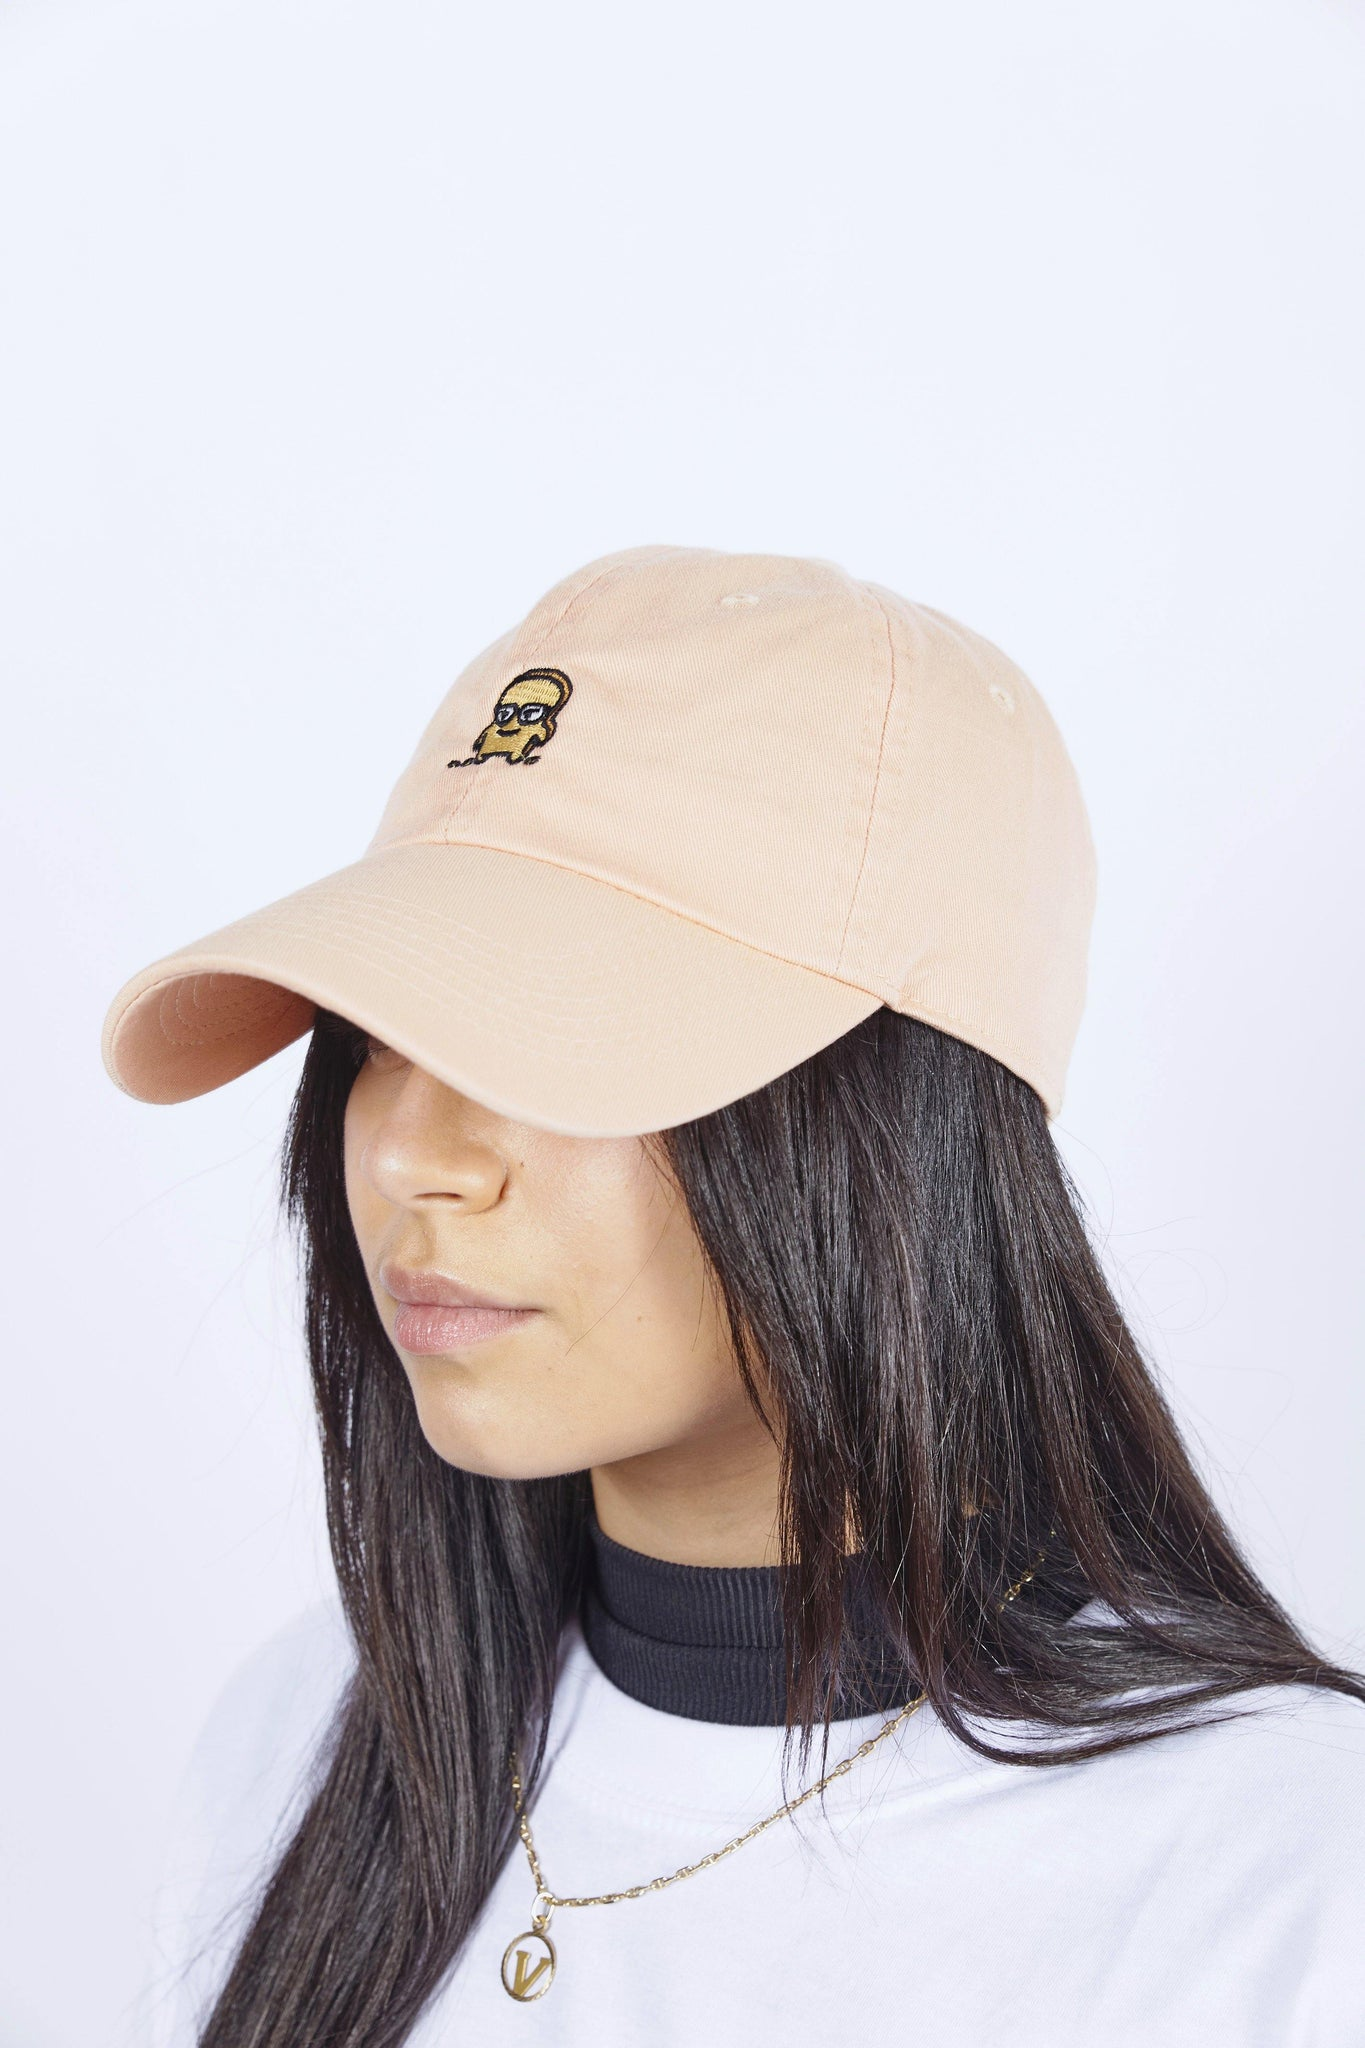 PEACH DAD HAT - Choast